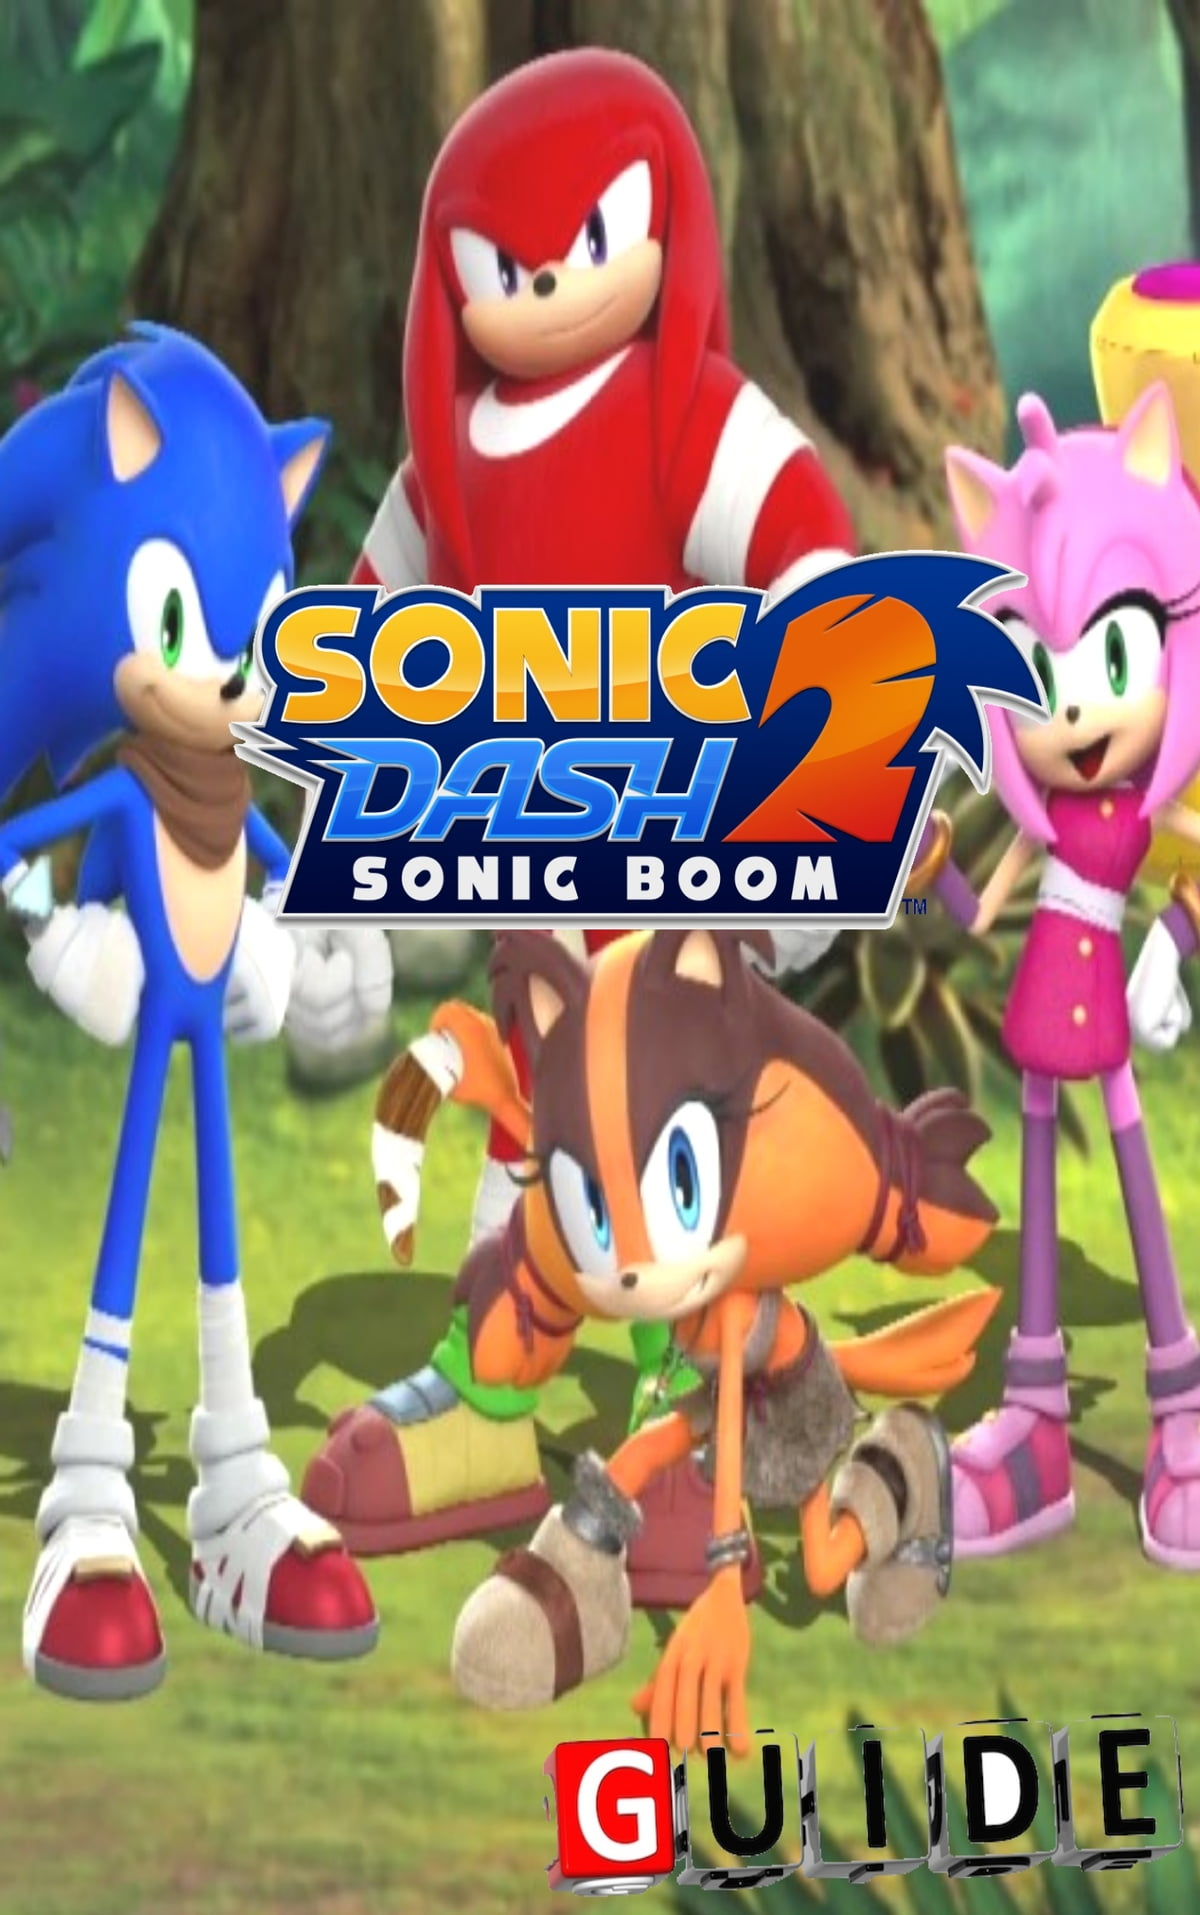 Sonic dash 2 boom | Sonic Dash 2: Sonic Boom for Android  2019-03-22